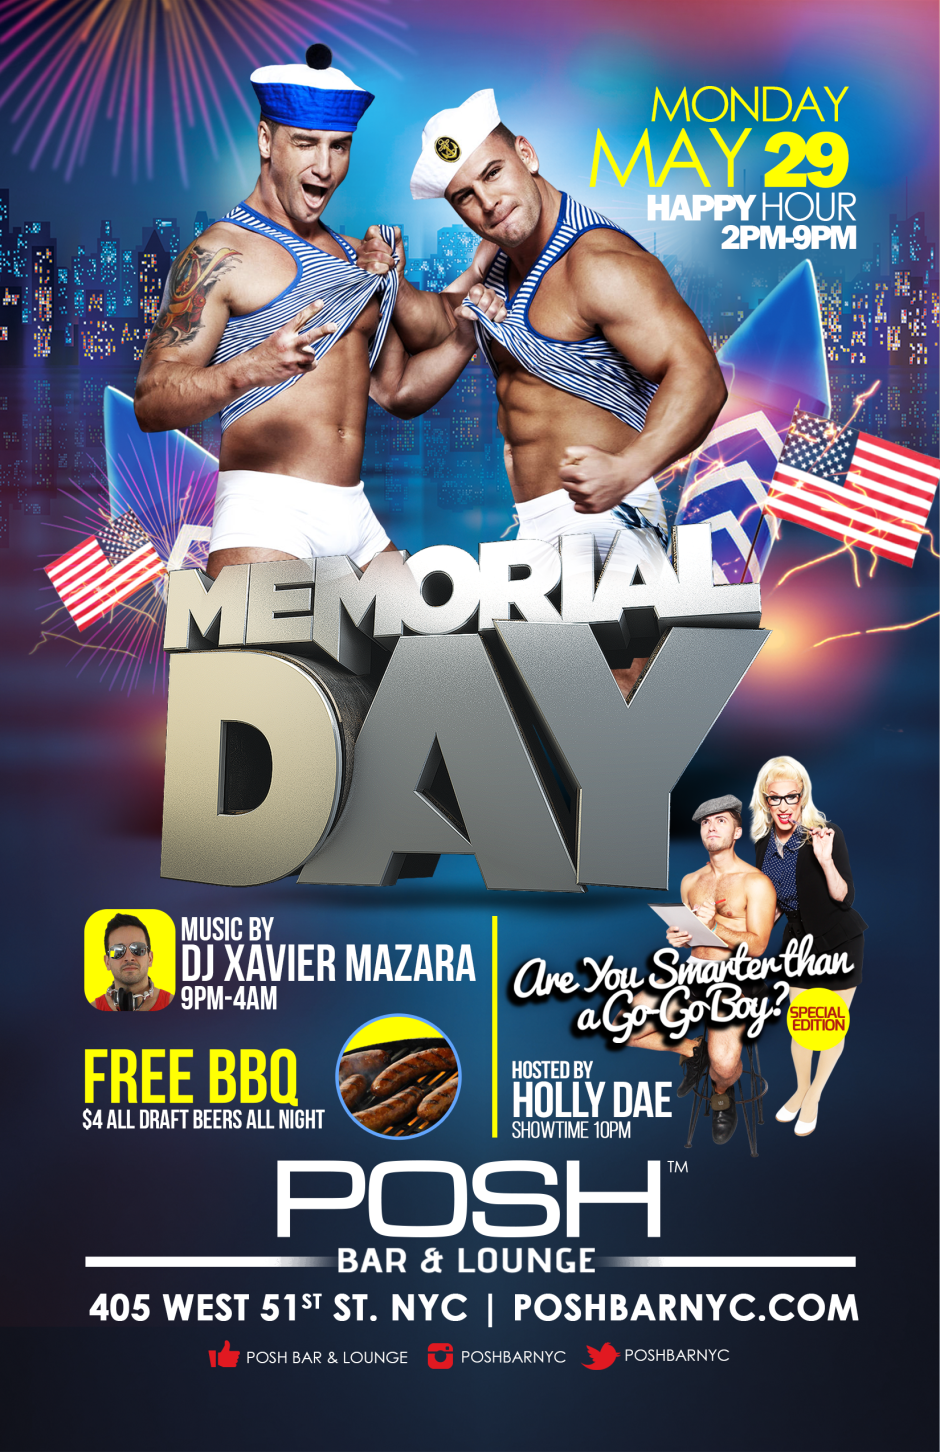 http://poshbarnyc.com/wp-content/uploads/2017/04/MEMORIAL-DAY-POSH-2017.png